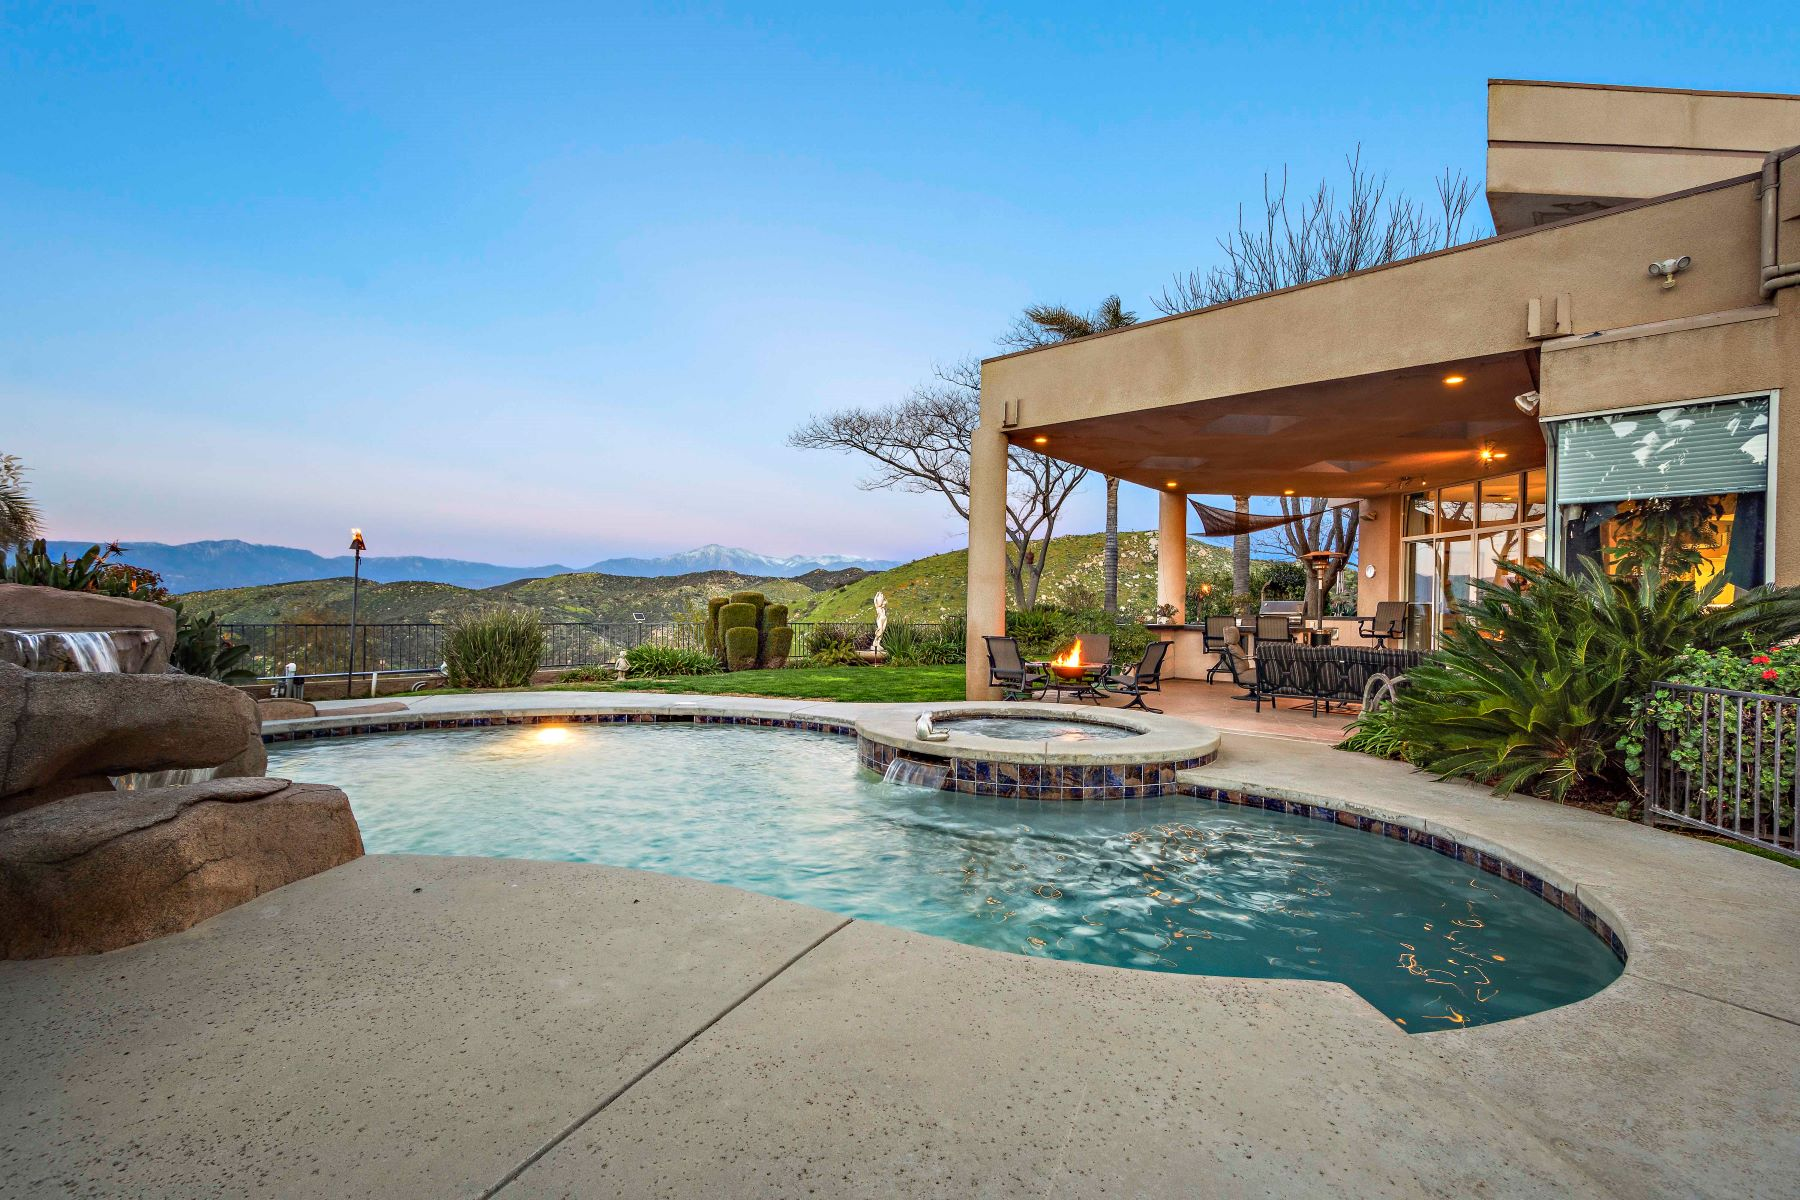 Single Family Homes for Sale at 9450 Manor Mountain Moreno Valley, California 92557 United States